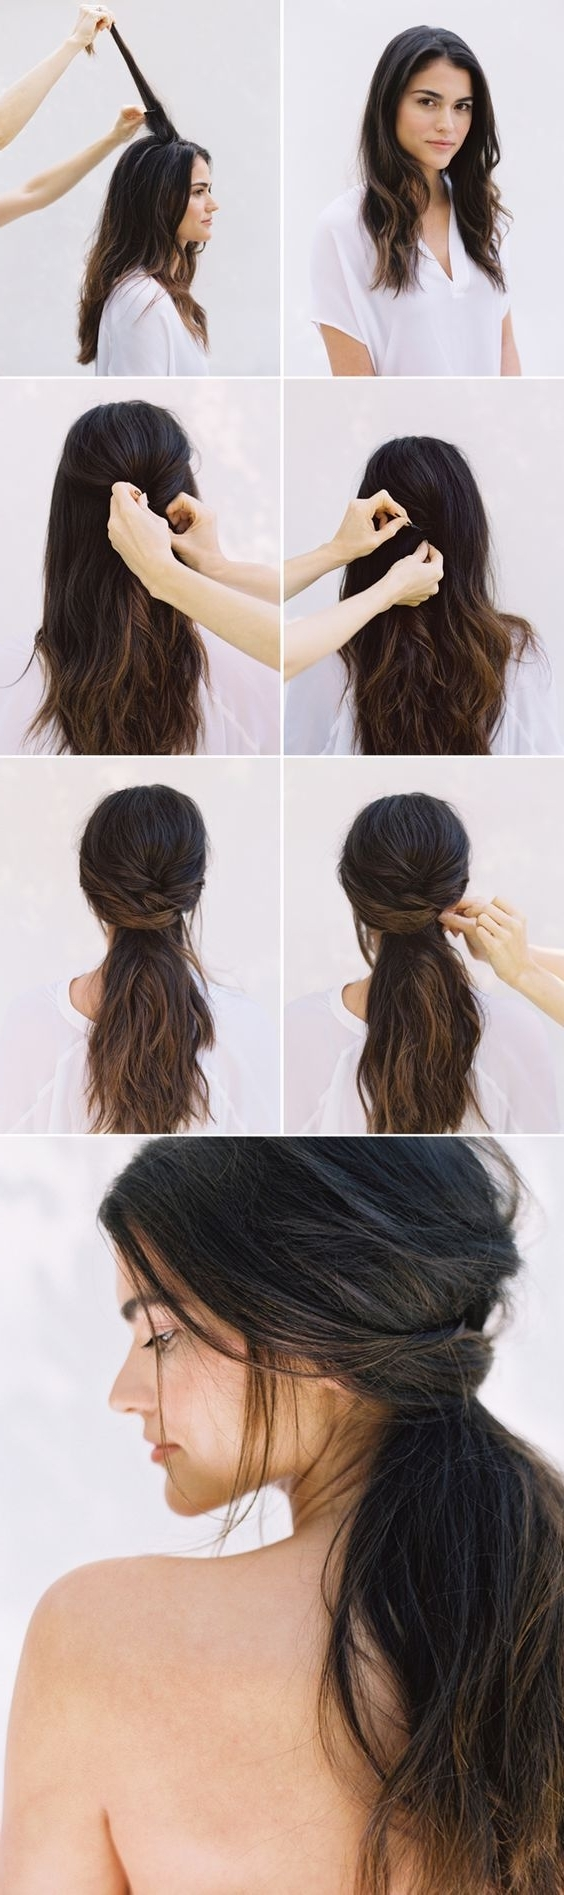 Trendy Low Bun Updo Hairstyles Tutorials Easy Cute Impressive For With Easy Updos For Thick Medium Length Hair (View 10 of 15)